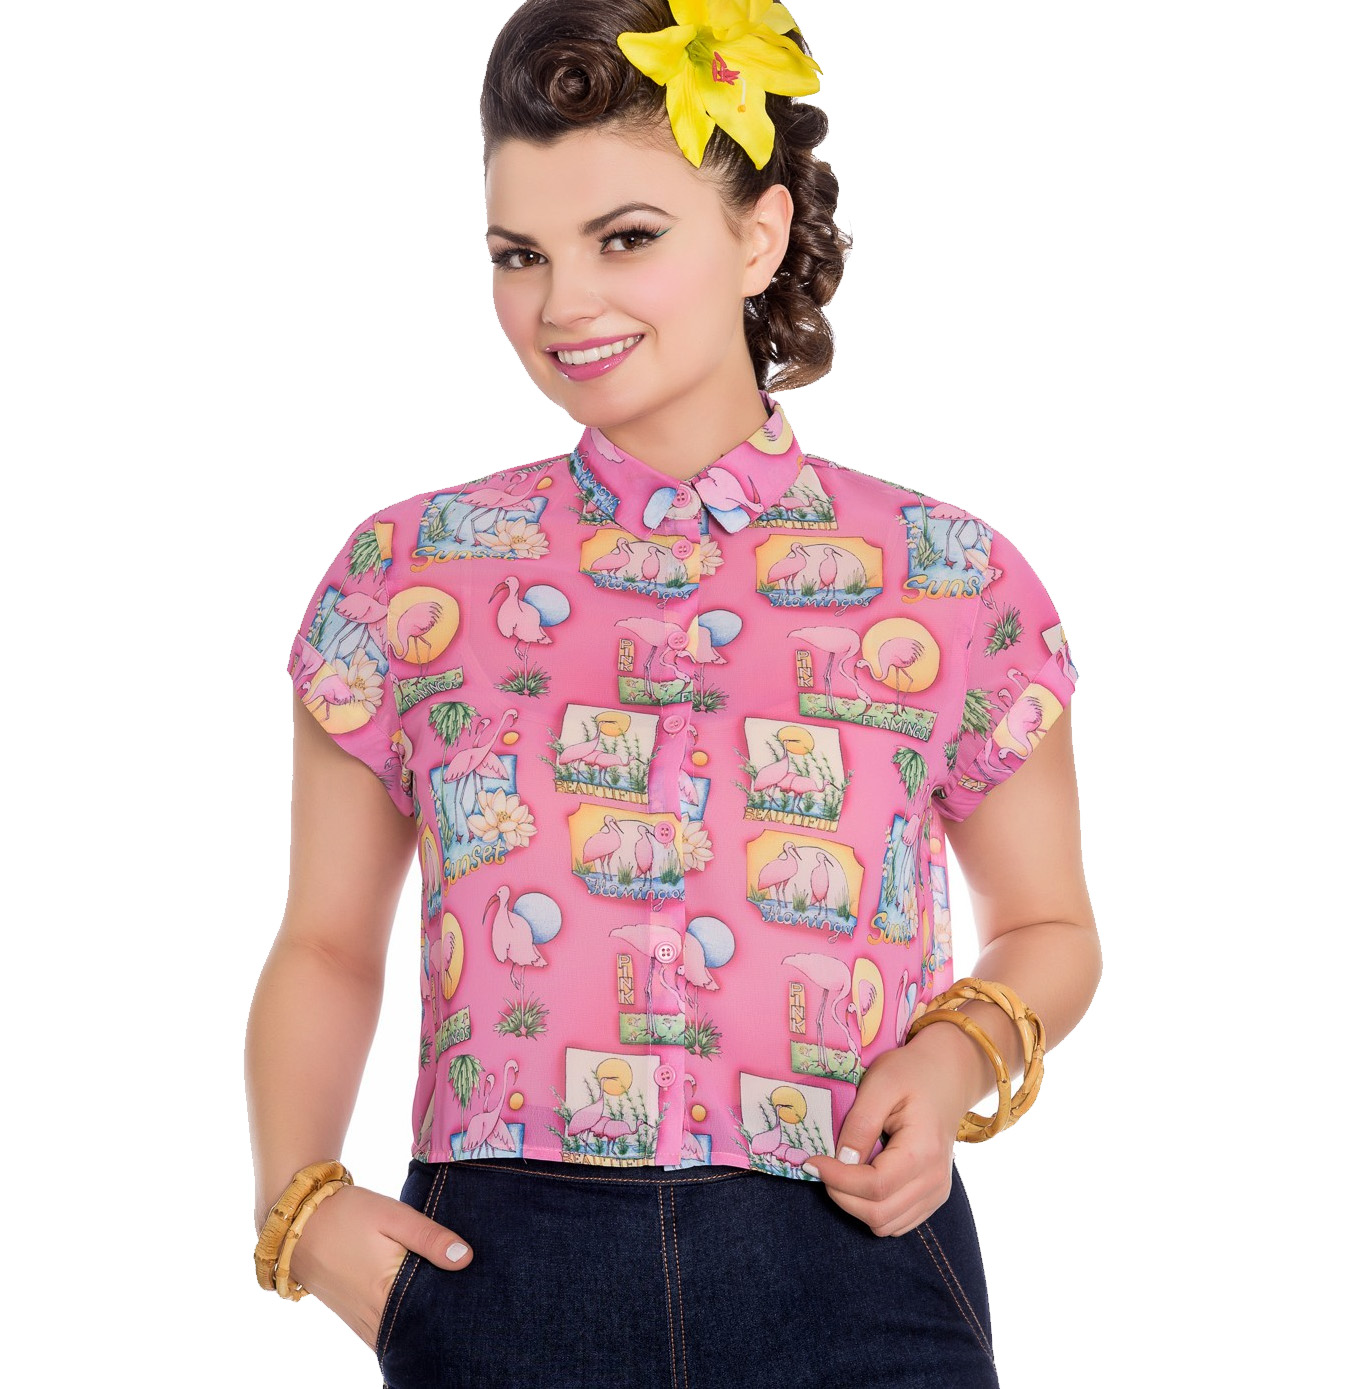 thumbnail 10 - Hell Bunny 50s Retro Top Pink Flamingo MAXINE Cropped Blouse Shirt All Sizes